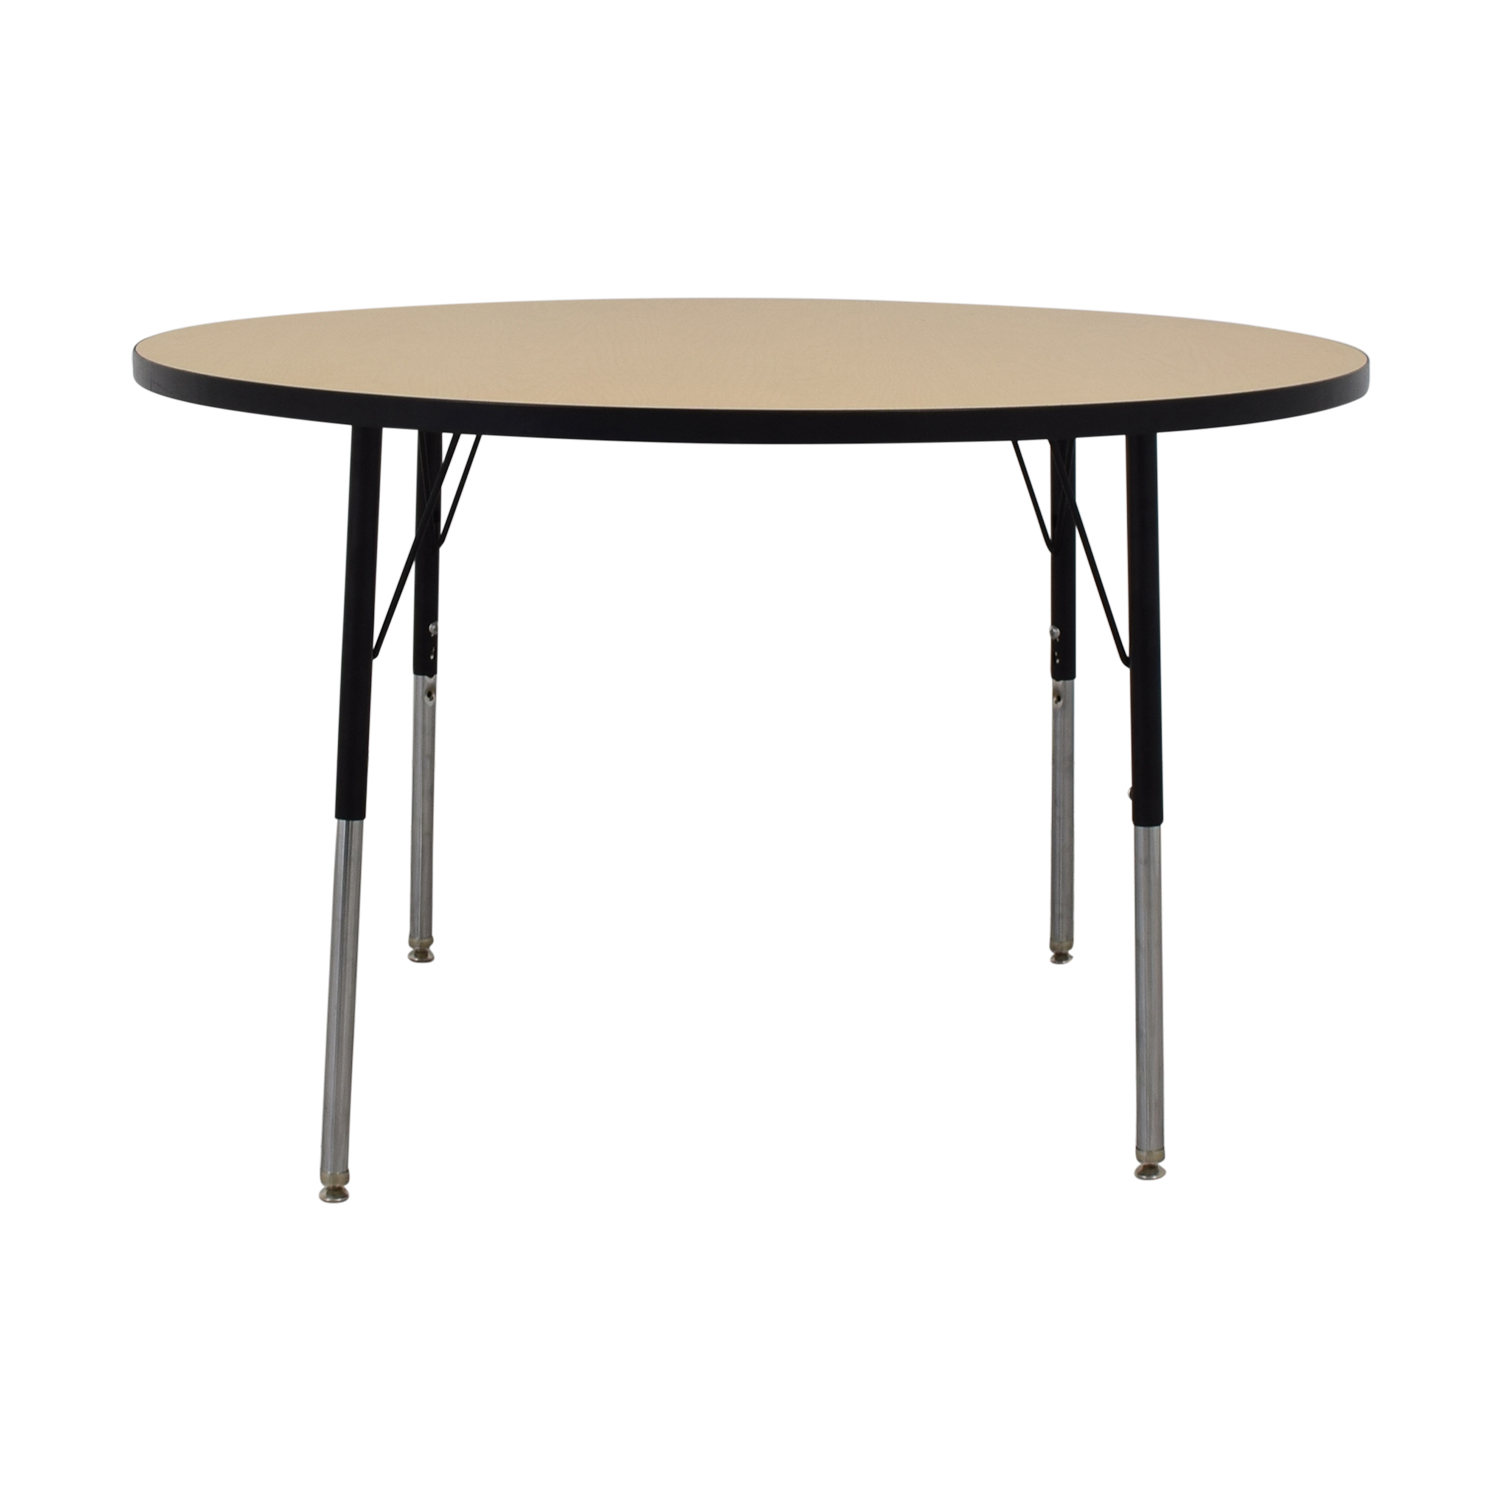 Round Activity Table on sale